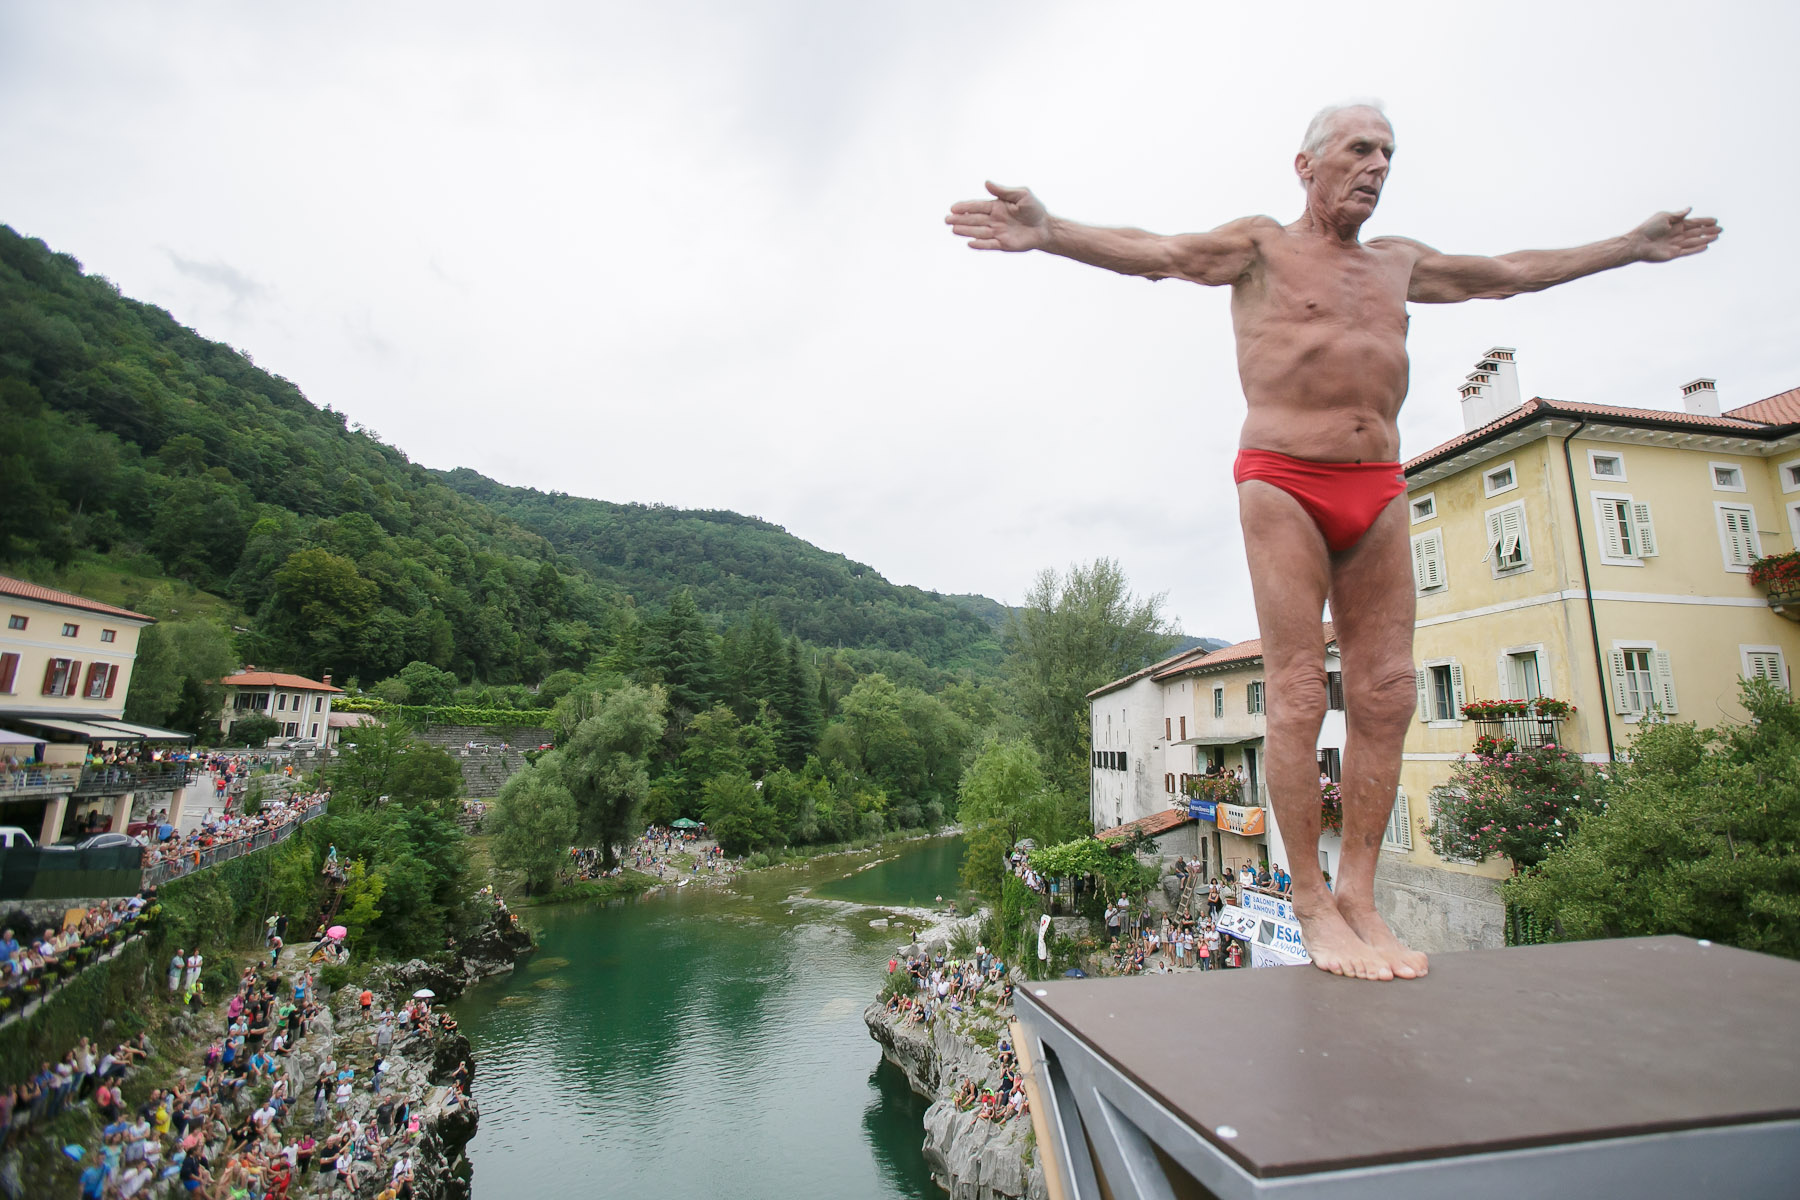 77-year old Pino Auber from Trieste, Italy, prepares to dive from a bridge over river Soca during the annual diving competition in Kanal, Slovenia, August 16, 2015.